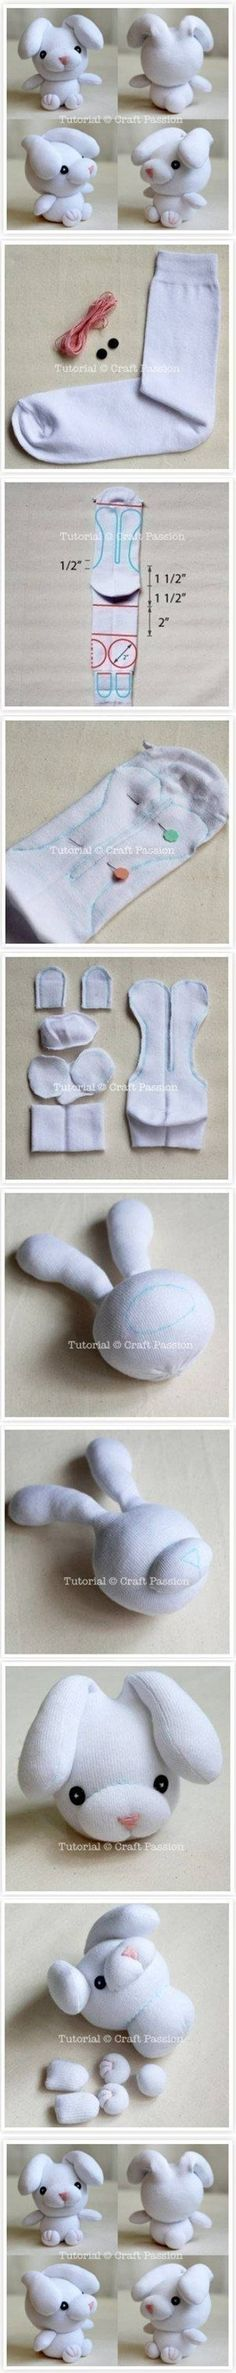 Sewing Animals Projects DIY Bunny peluches de conejito - Learn how to sew by taking things one step at a time. You'll find everything you need in this article for sewing newbies. Sewing Toys, Sewing Crafts, Sewing Projects, Diy Projects, Craft Tutorials, Free Tutorials, Sewing Hacks, Sewing Ideas, Sock Crafts